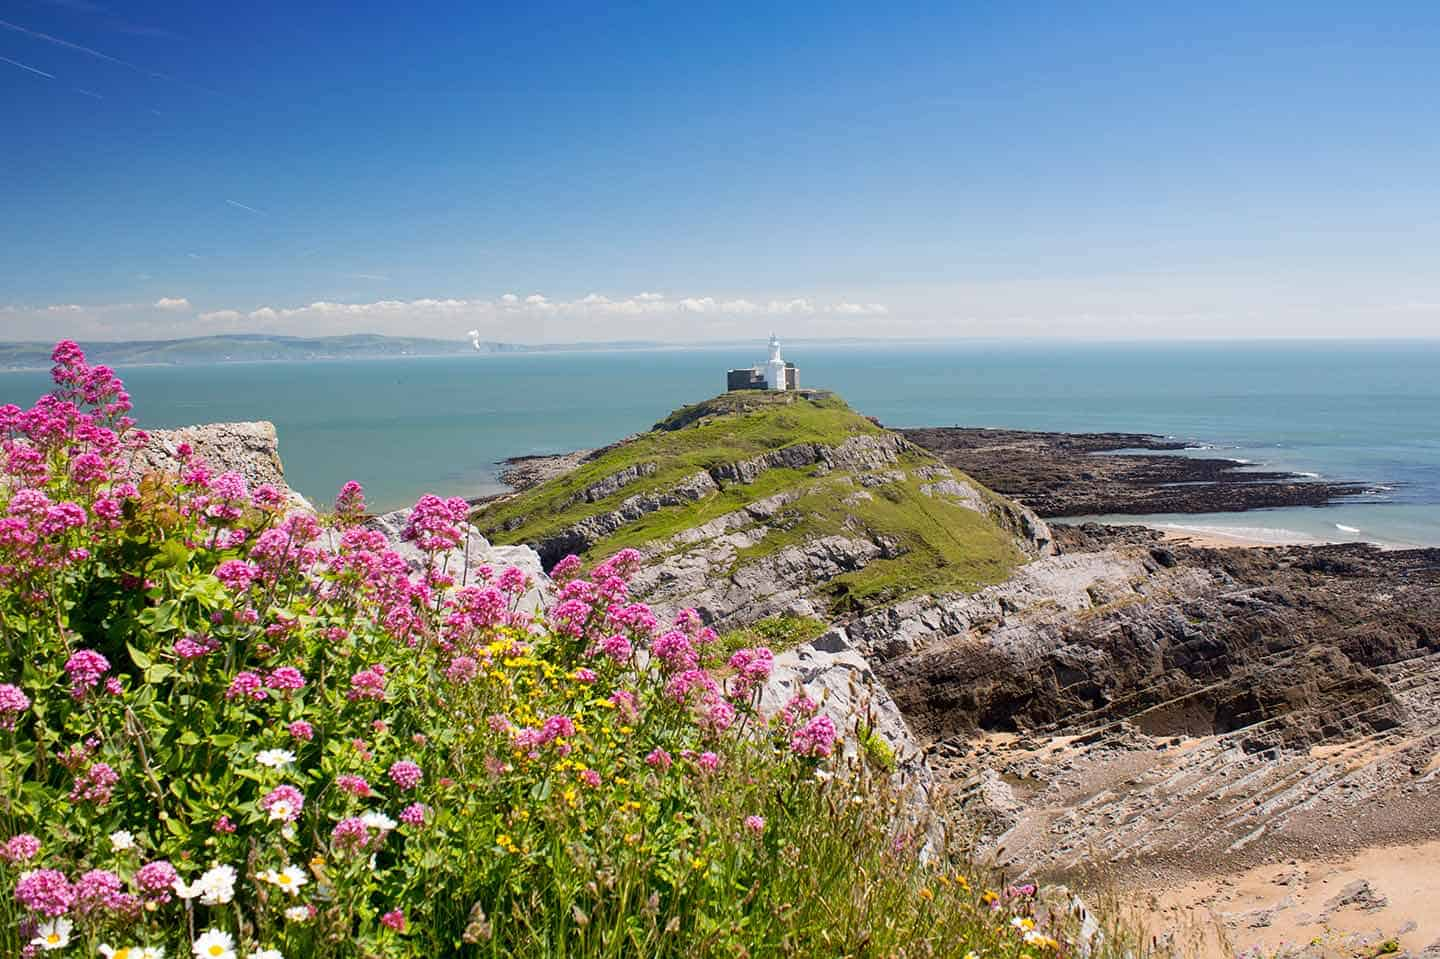 Image of Mumbles Head lighthouse, Swansea, Wales